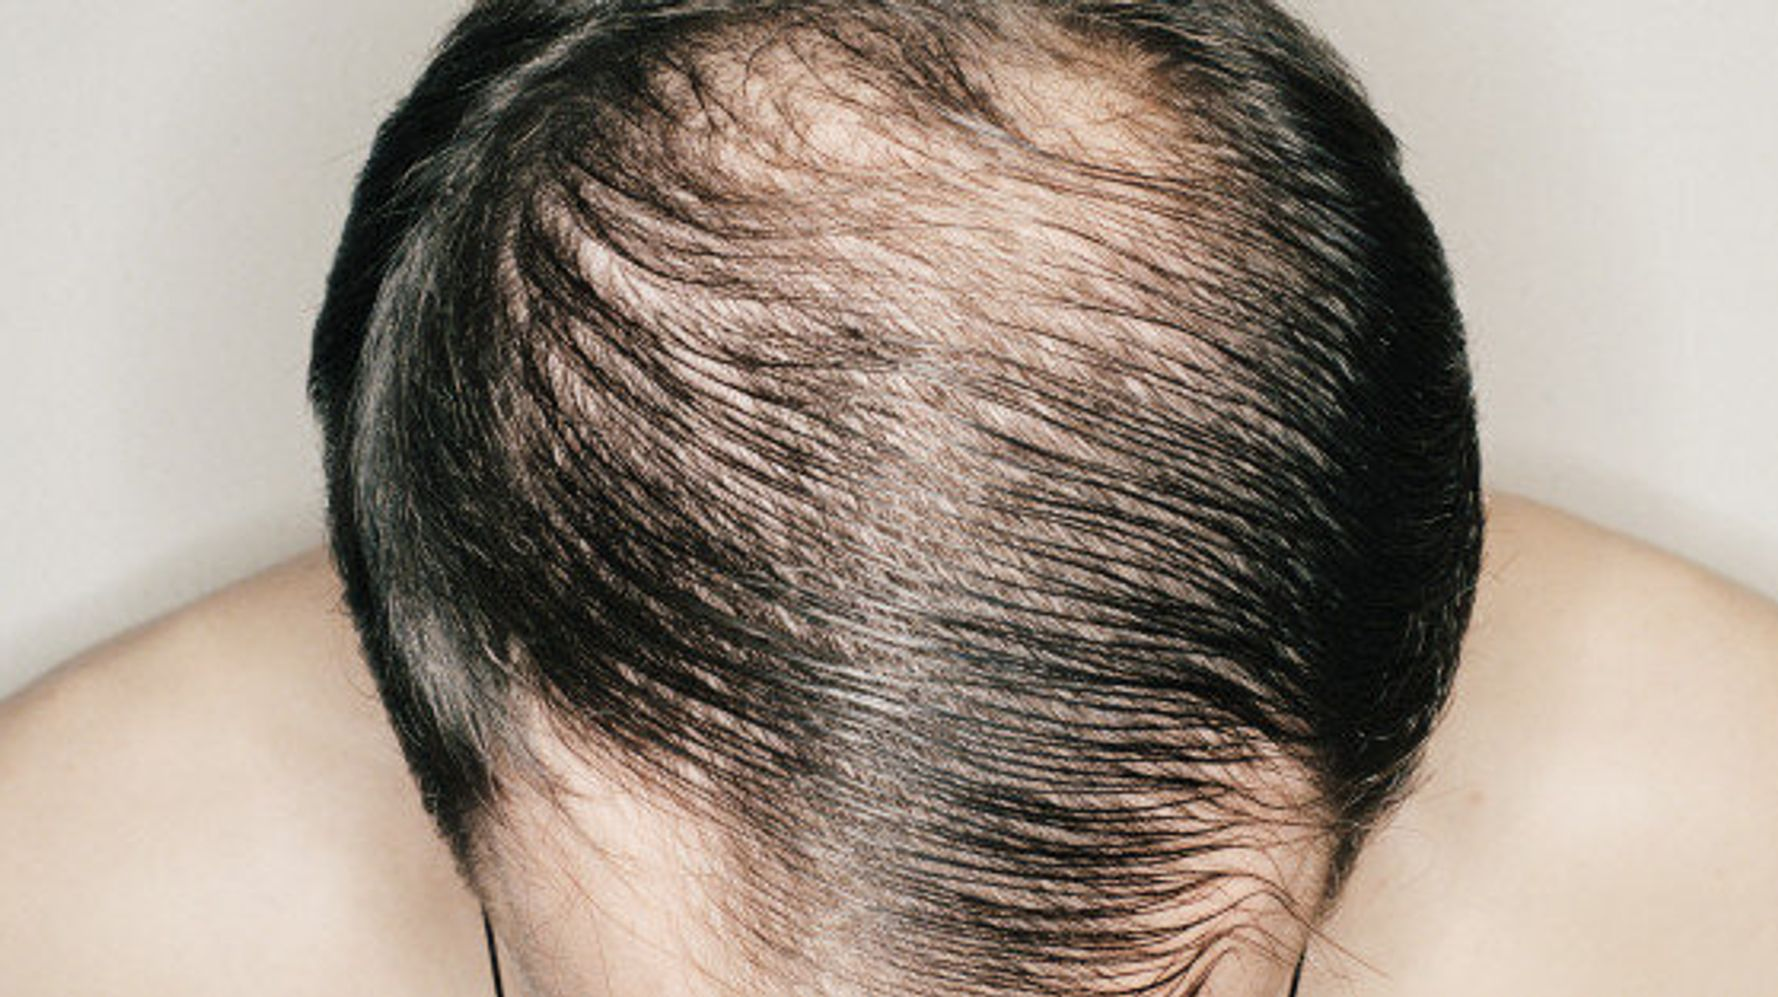 Male Baldness When Do Men Go Bald HuffPost Canada Life